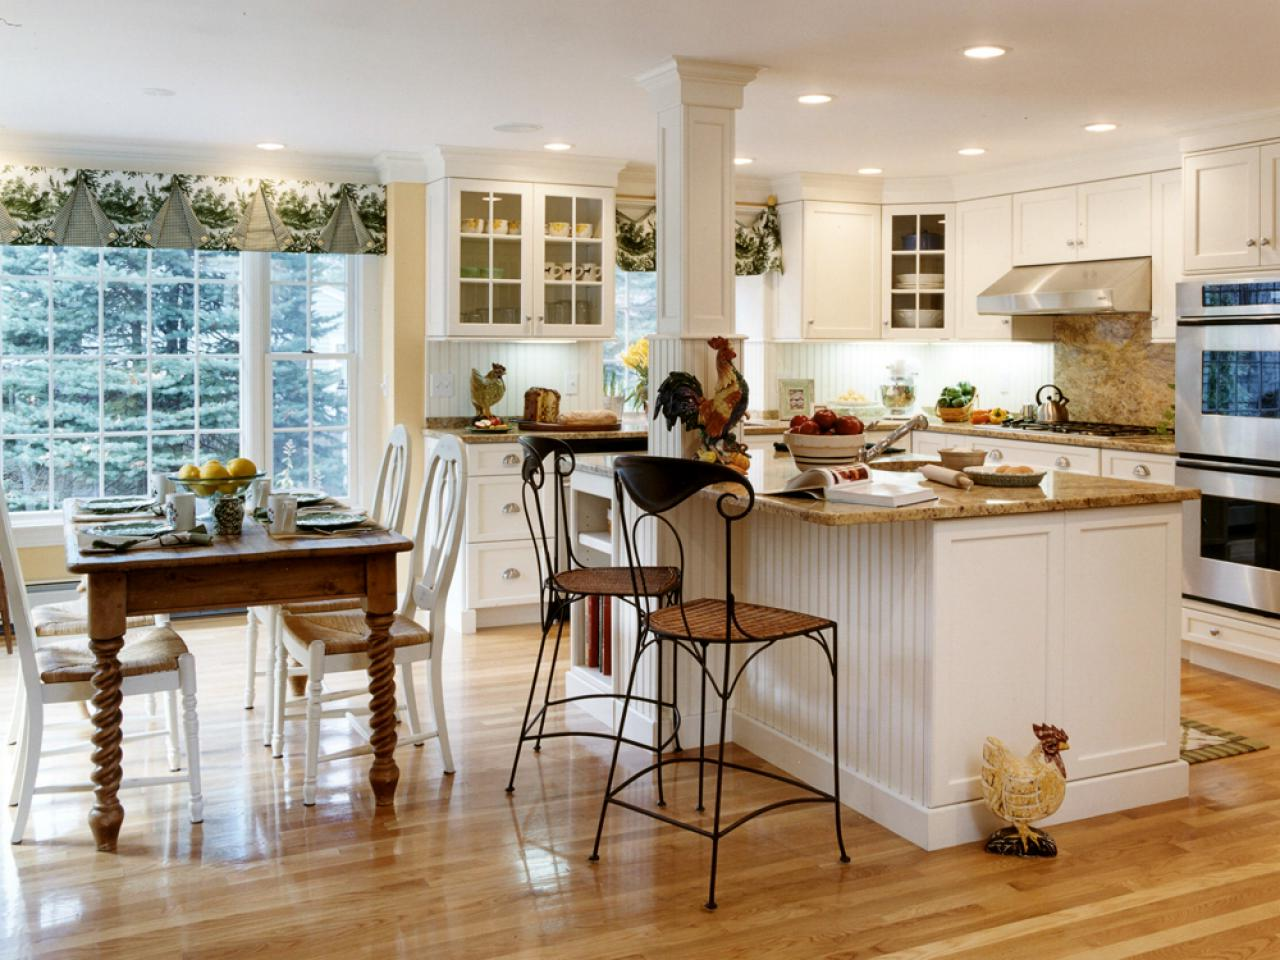 Kitchen design images kitchen in country style with for Kitchen remodel styles